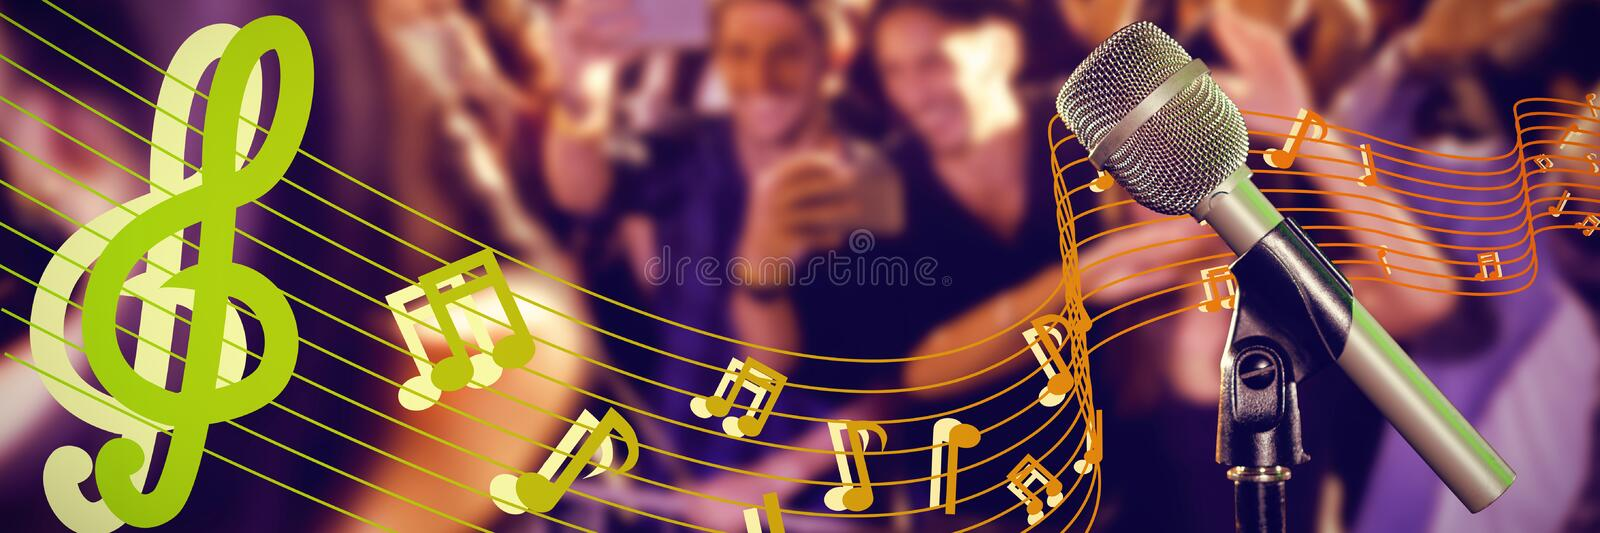 Composite image of close-up of microphone. Close-up of microphone against crowd photographing performer at nightclub stock photography